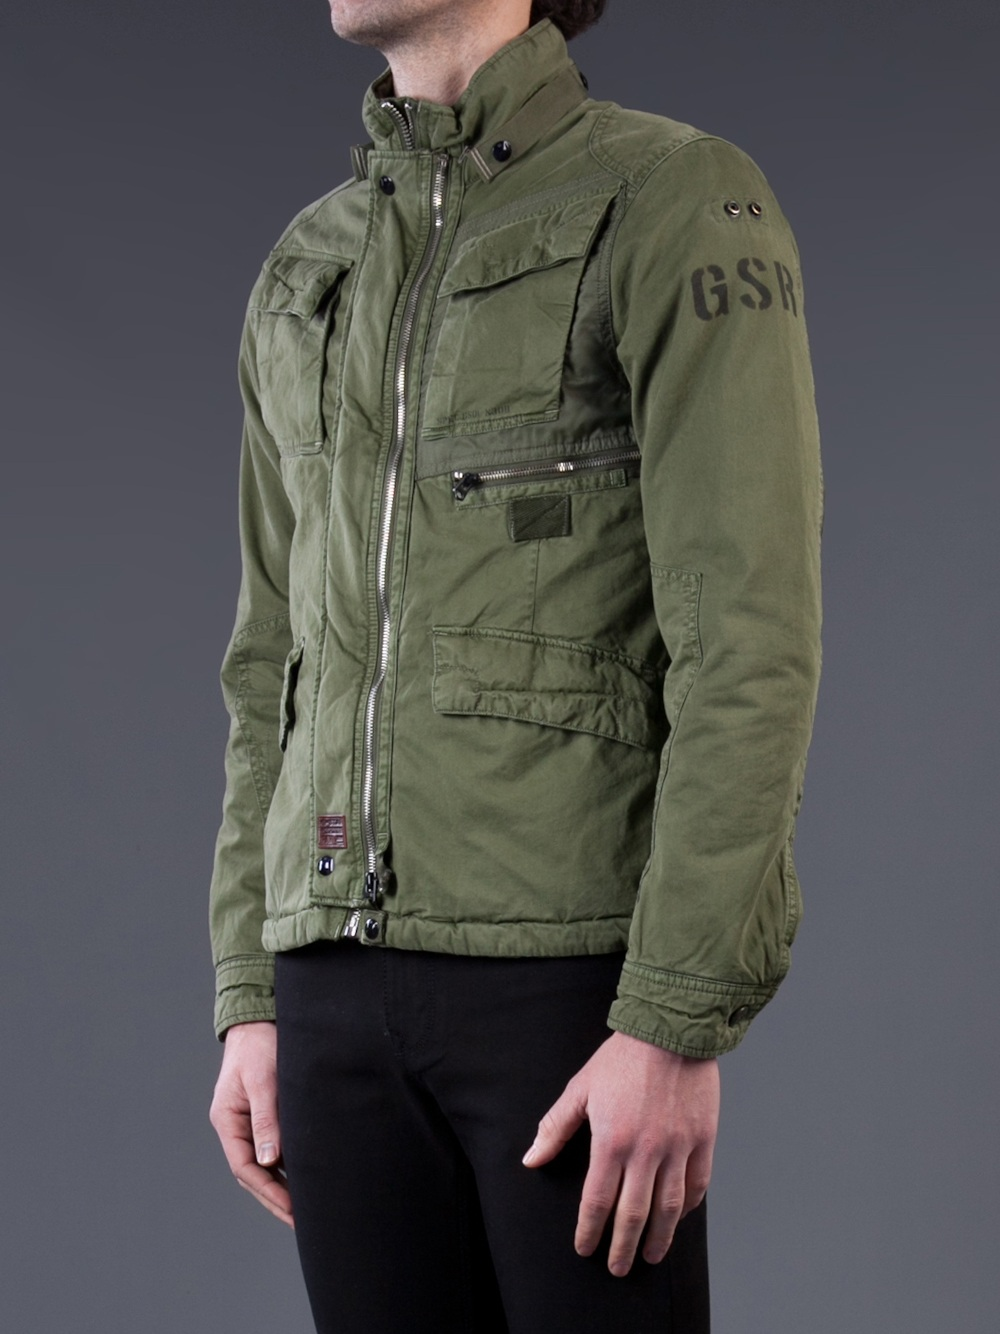 G Star Raw Aero Field Jacket In Green For Men Lyst